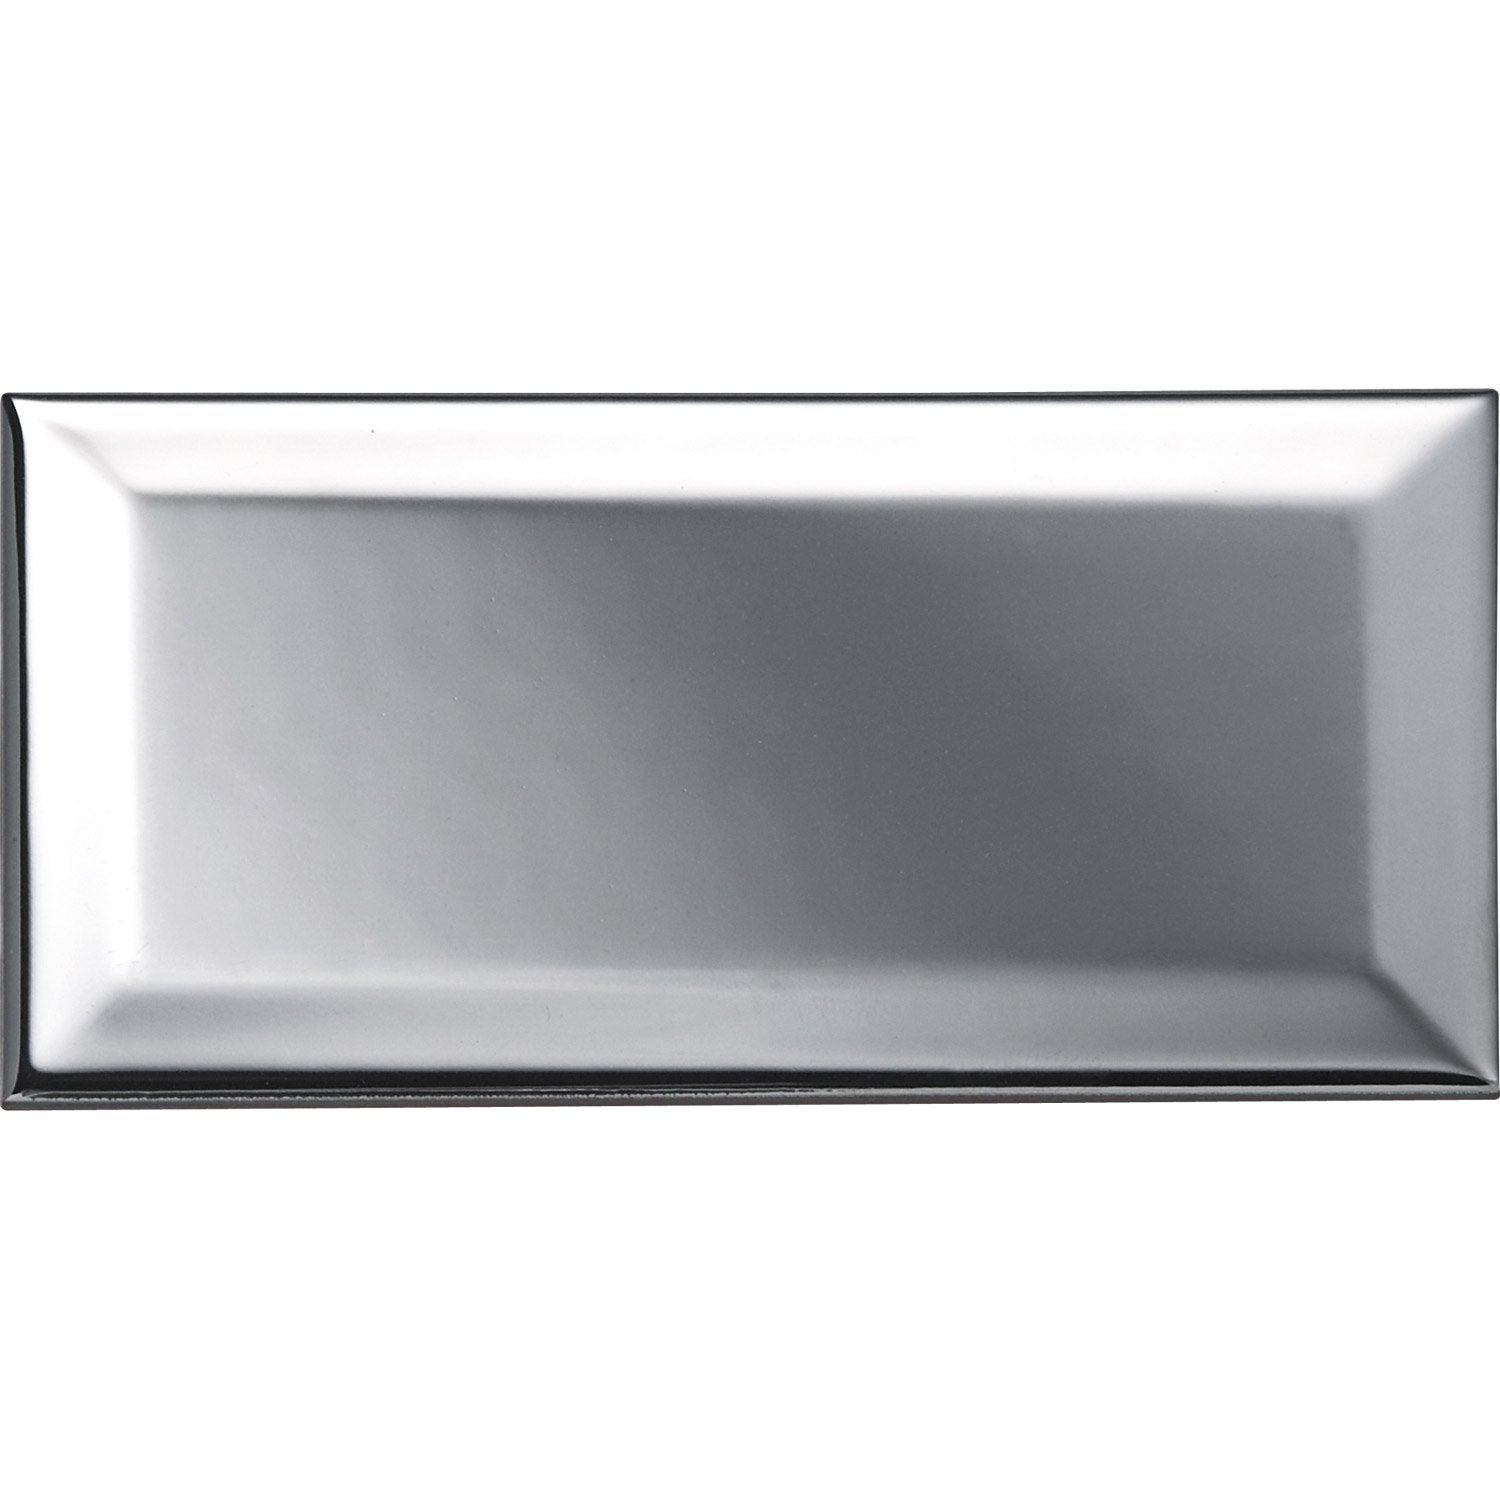 Frise m tro argent brillant cm leroy merlin for Table exterieur metro